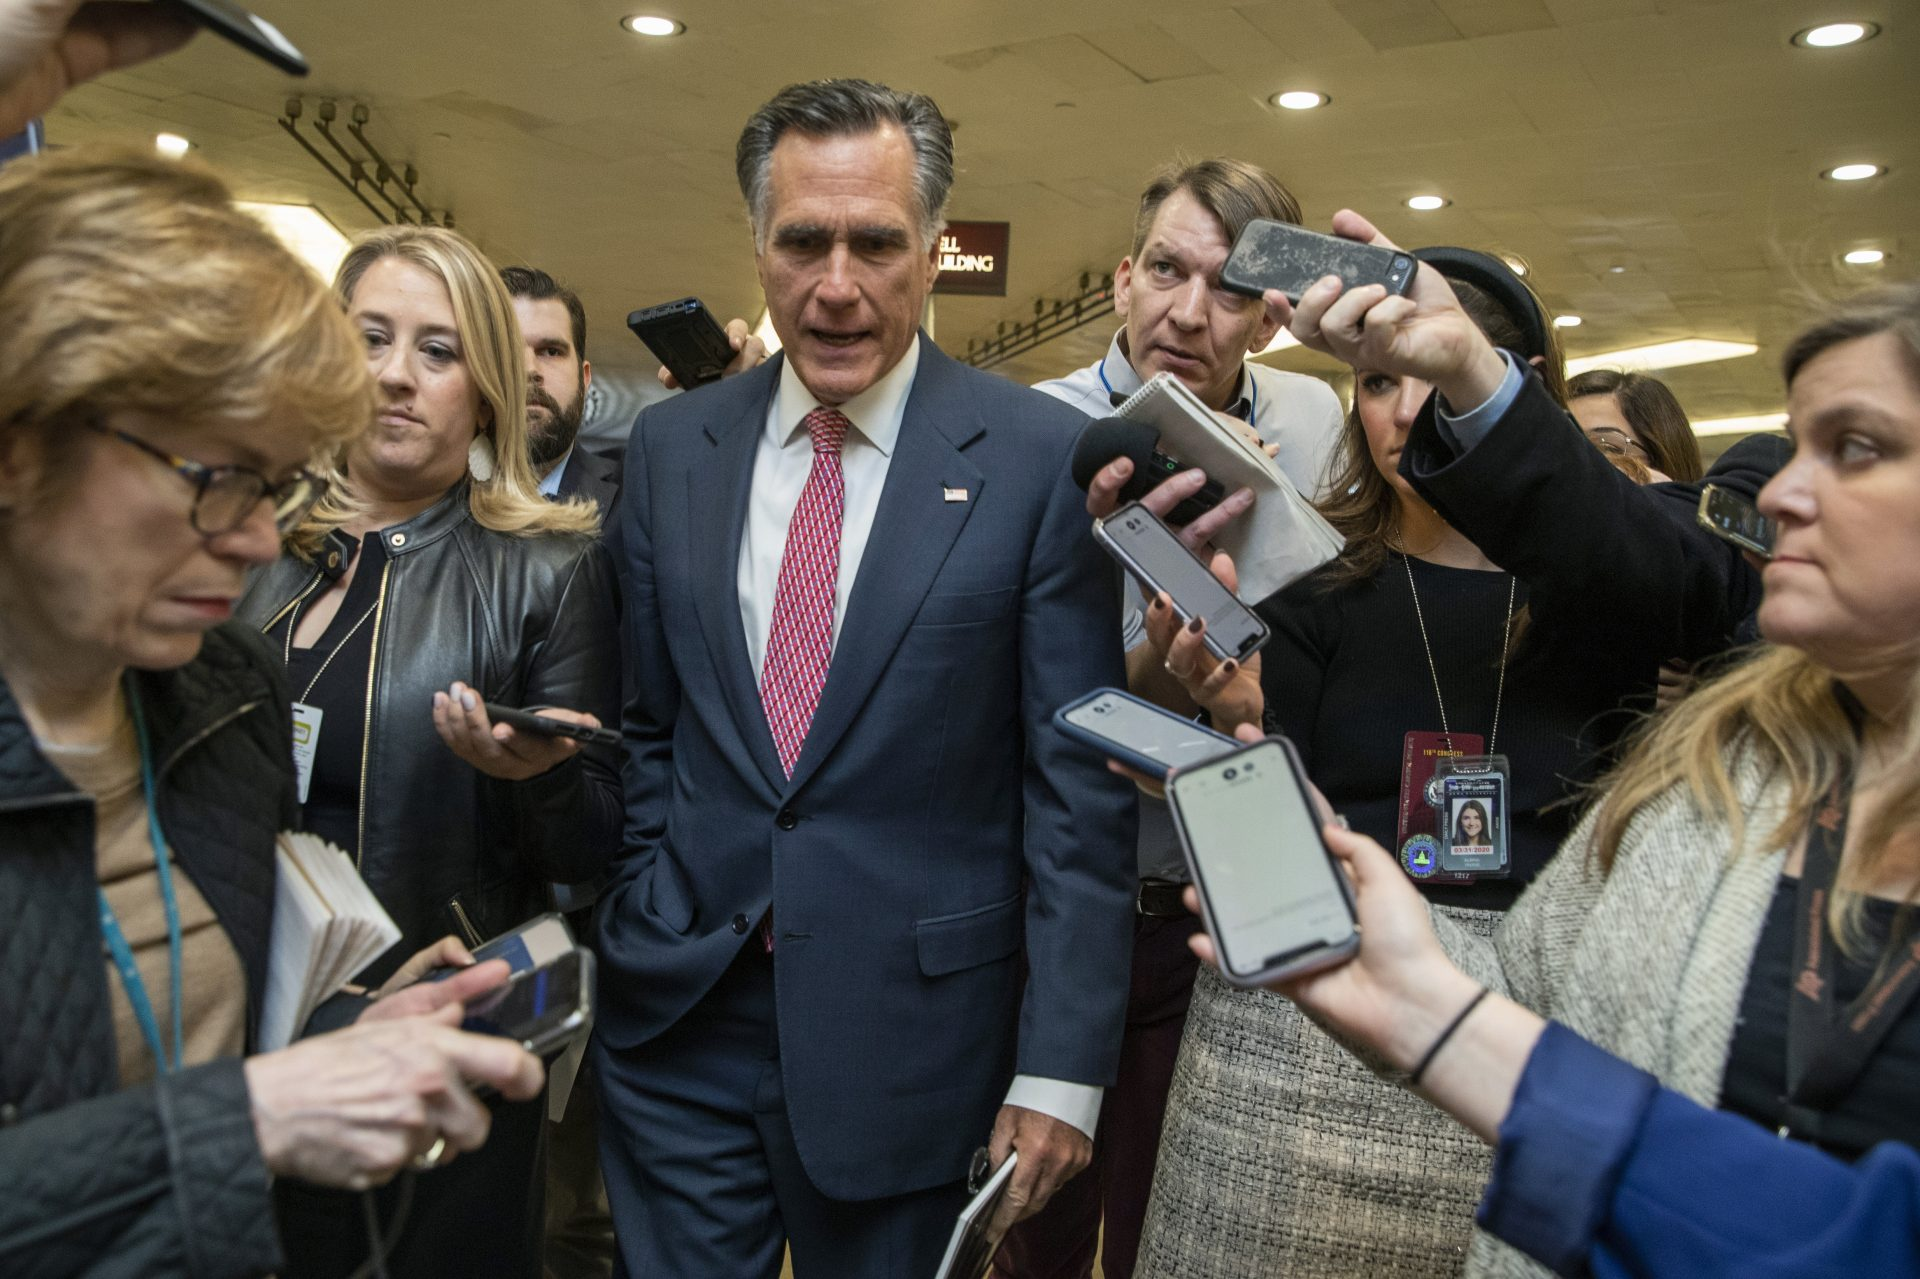 Sen. Mitt Romney, R-Utah, speaks to reporters as he arrives at the Capitol in Washington, Monday, Jan. 27, 2020, during the impeachment trial of President Donald Trump on charges of abuse of power and obstruction of Congress.